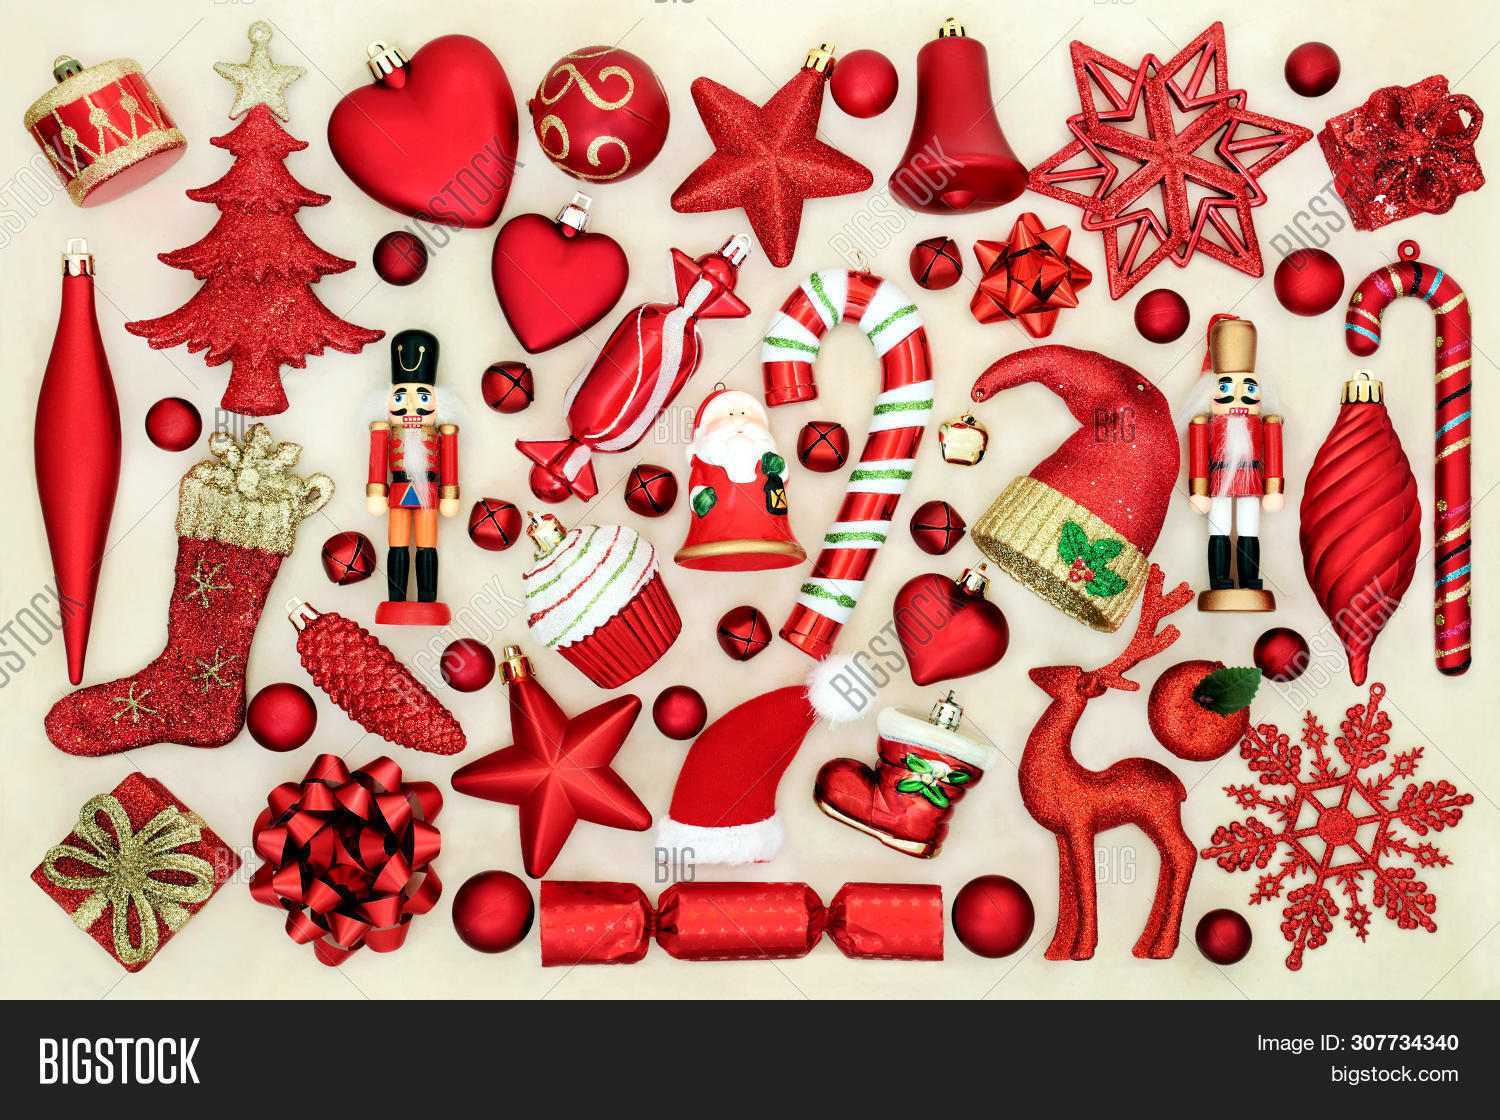 Large Collection Red Image Photo Free Trial Bigstock